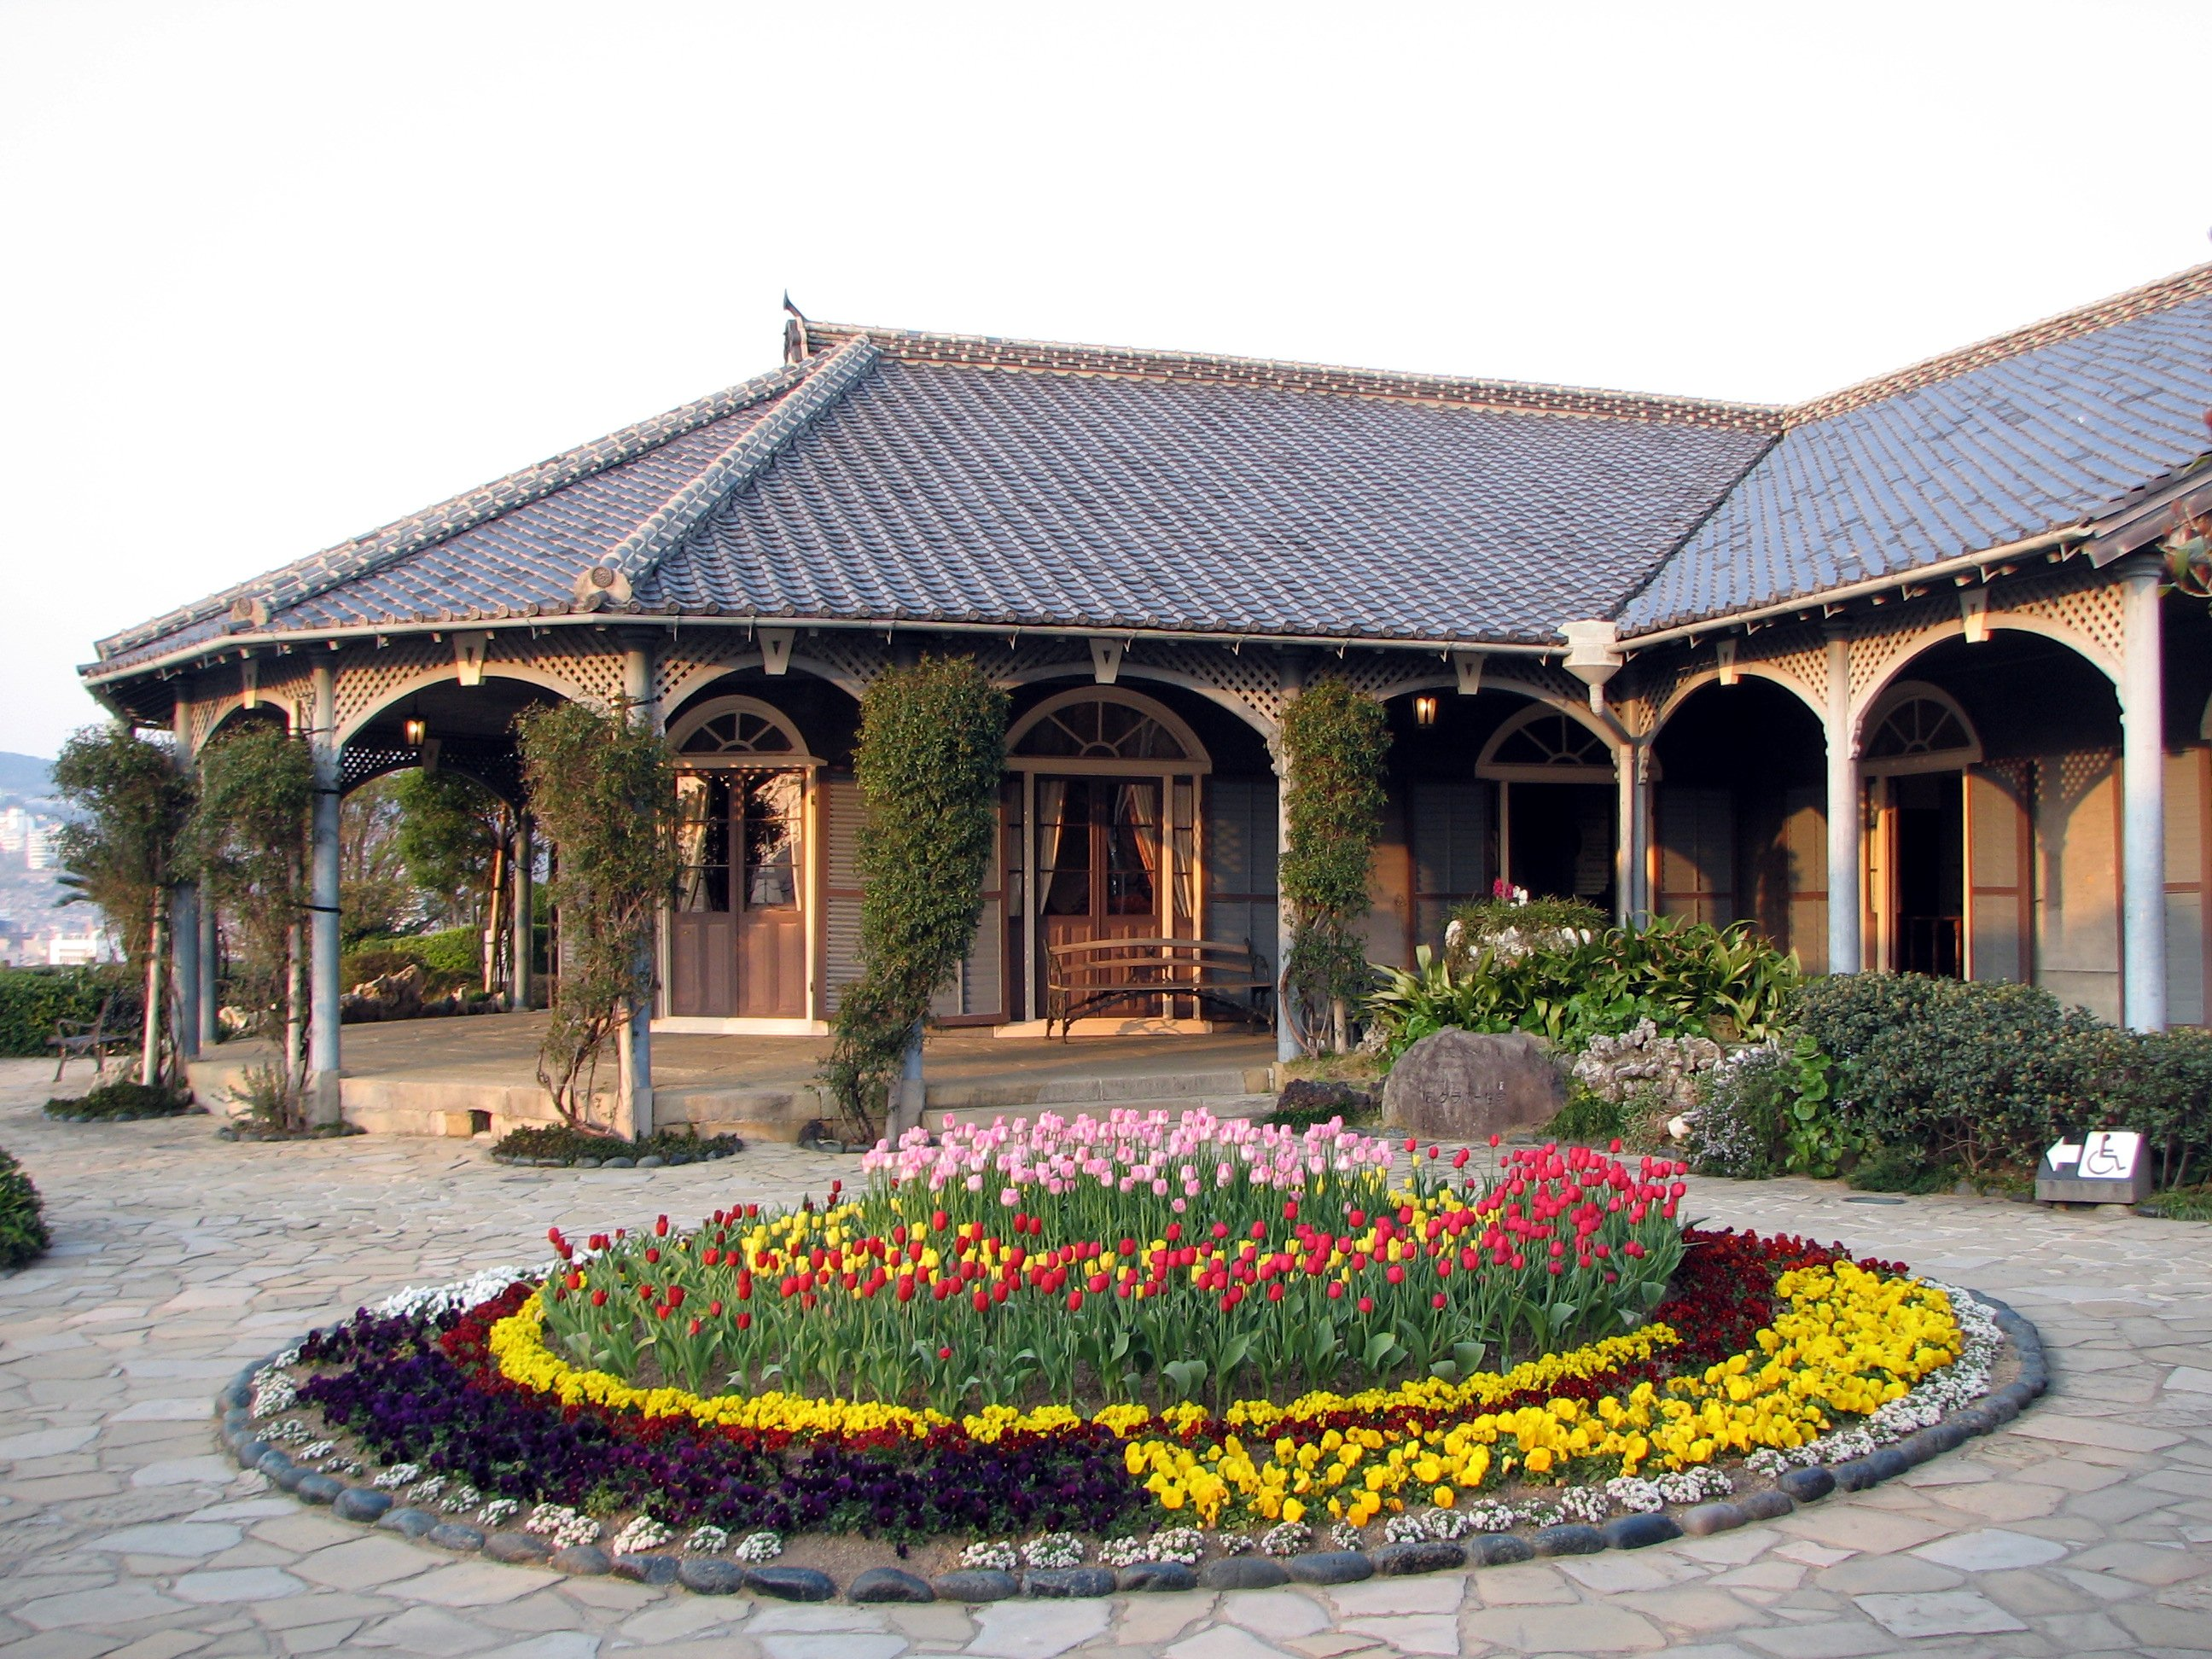 Old_Glover_House_Glover_Garden_Nagasaki_Right.JPG